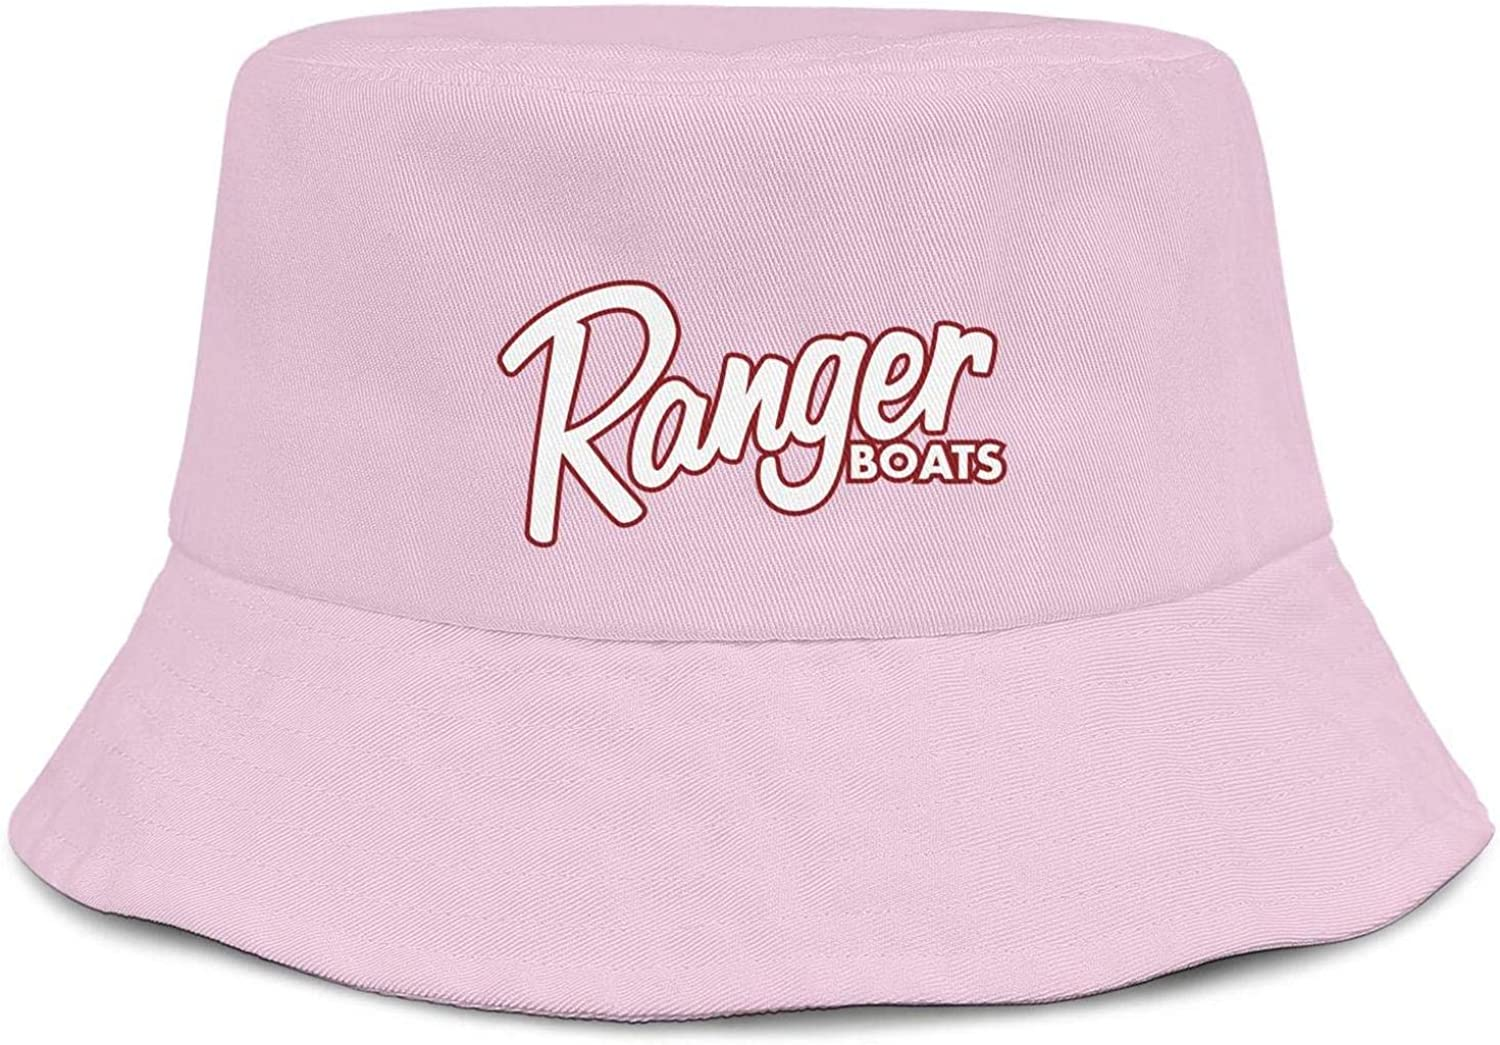 Popular Travel Hat Ranger-Boats-Used-bass-Fishing-Boats-for-Sale-White Washed Cotton Sun Cap Unisex